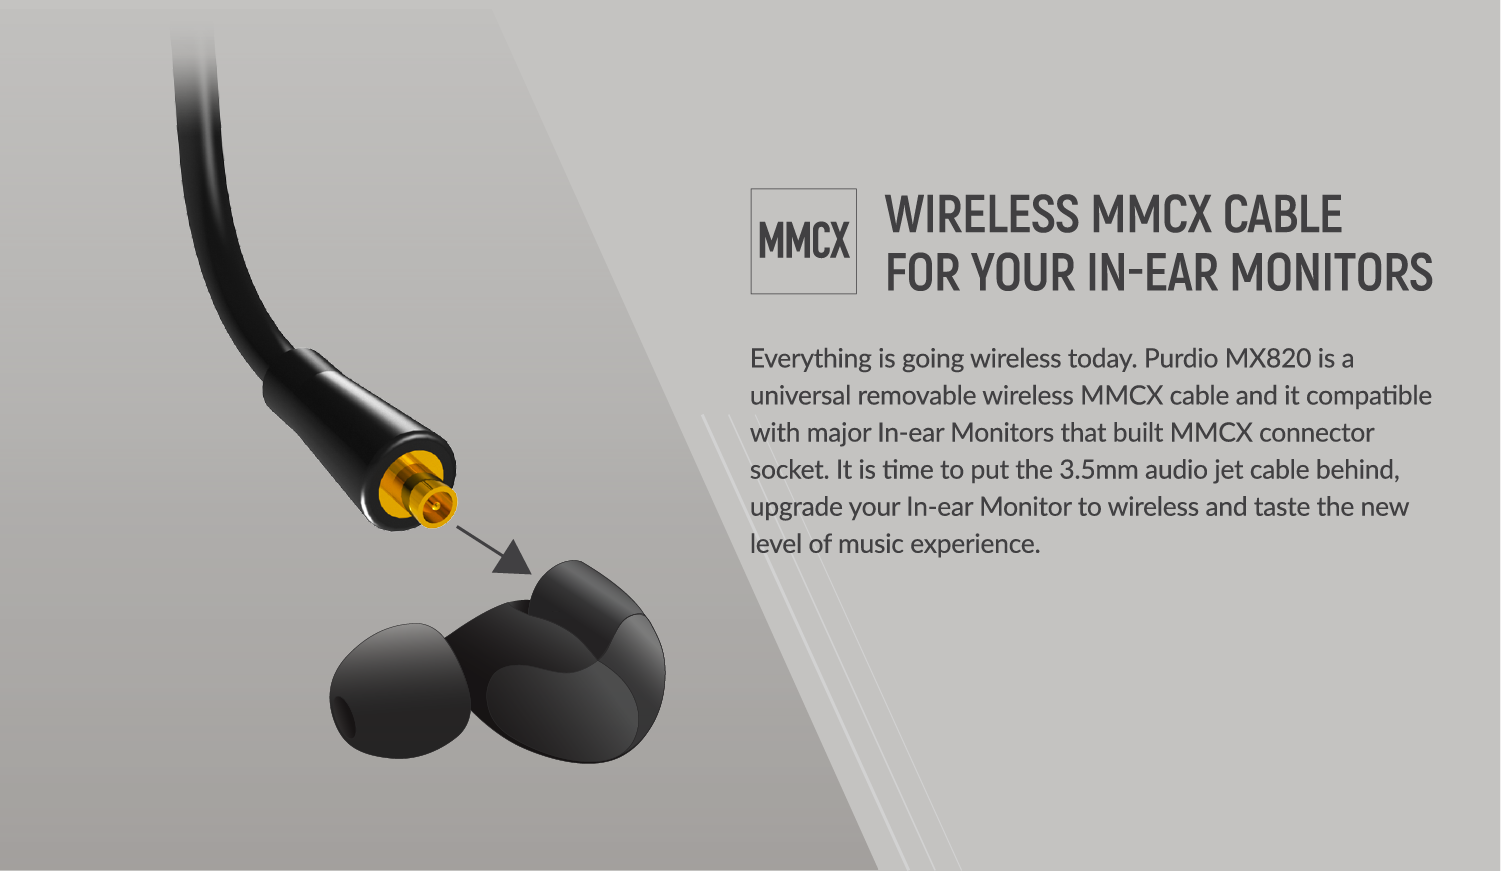 MMCX Cable, wireless MMCX cable, removable MMCX cable, bluetooth MMCX cable, Westone, shure,